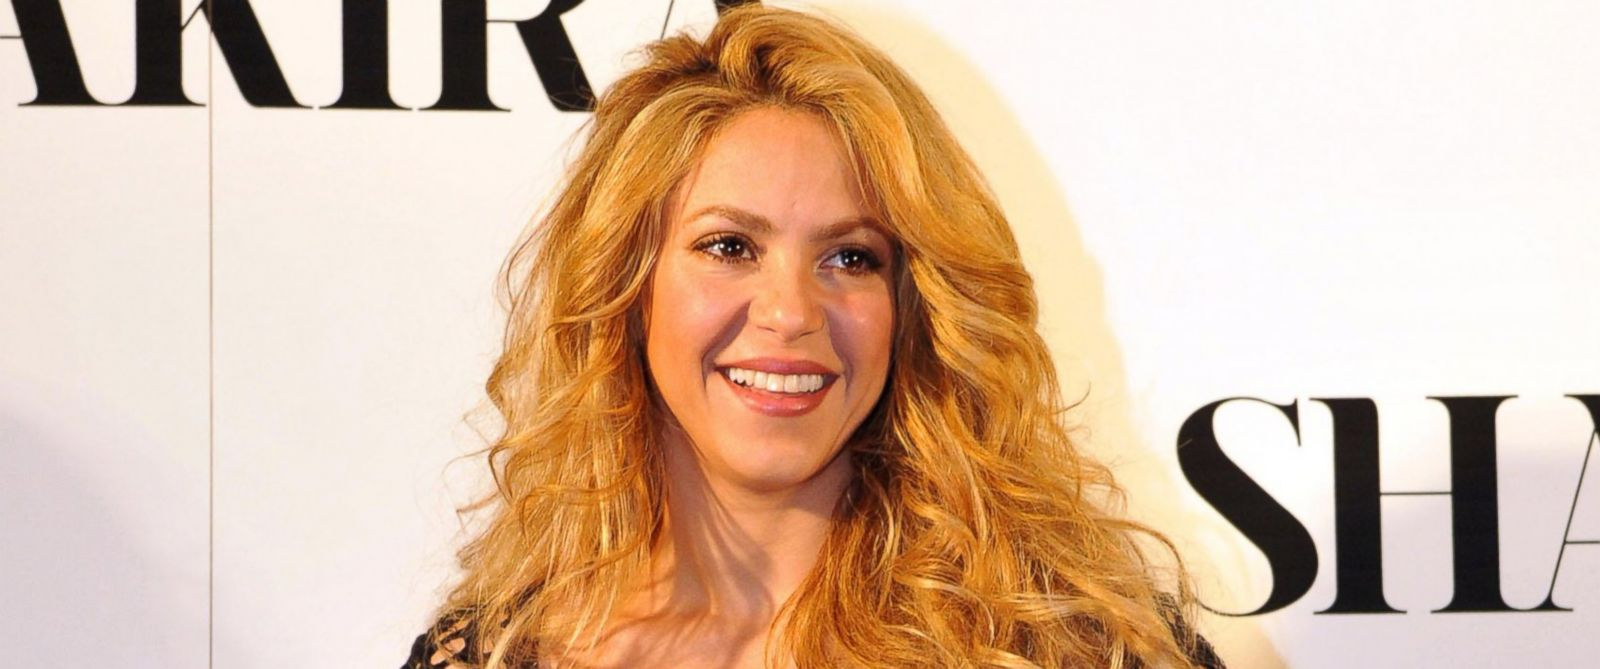 PHOTO: Shakira attends a photocall during a party celebrating her latest music album on March 20, 2014 in Barcelona, Spain.